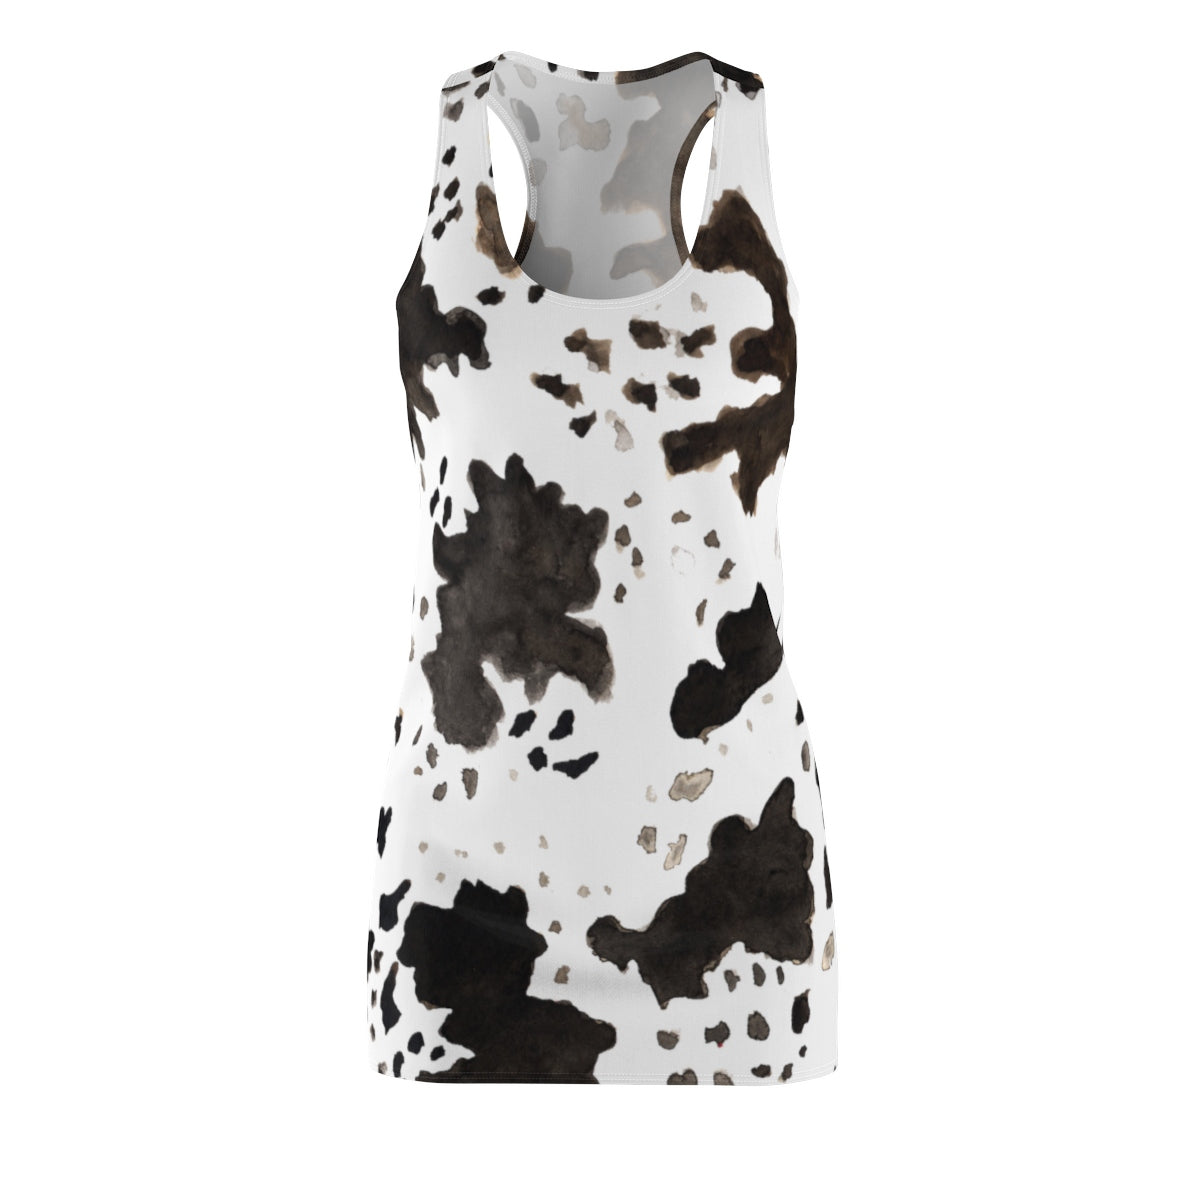 Miri Cow Print Black White Brown Women's Cut & Sew Racerback Dress - Made in USA (XS-2XL)